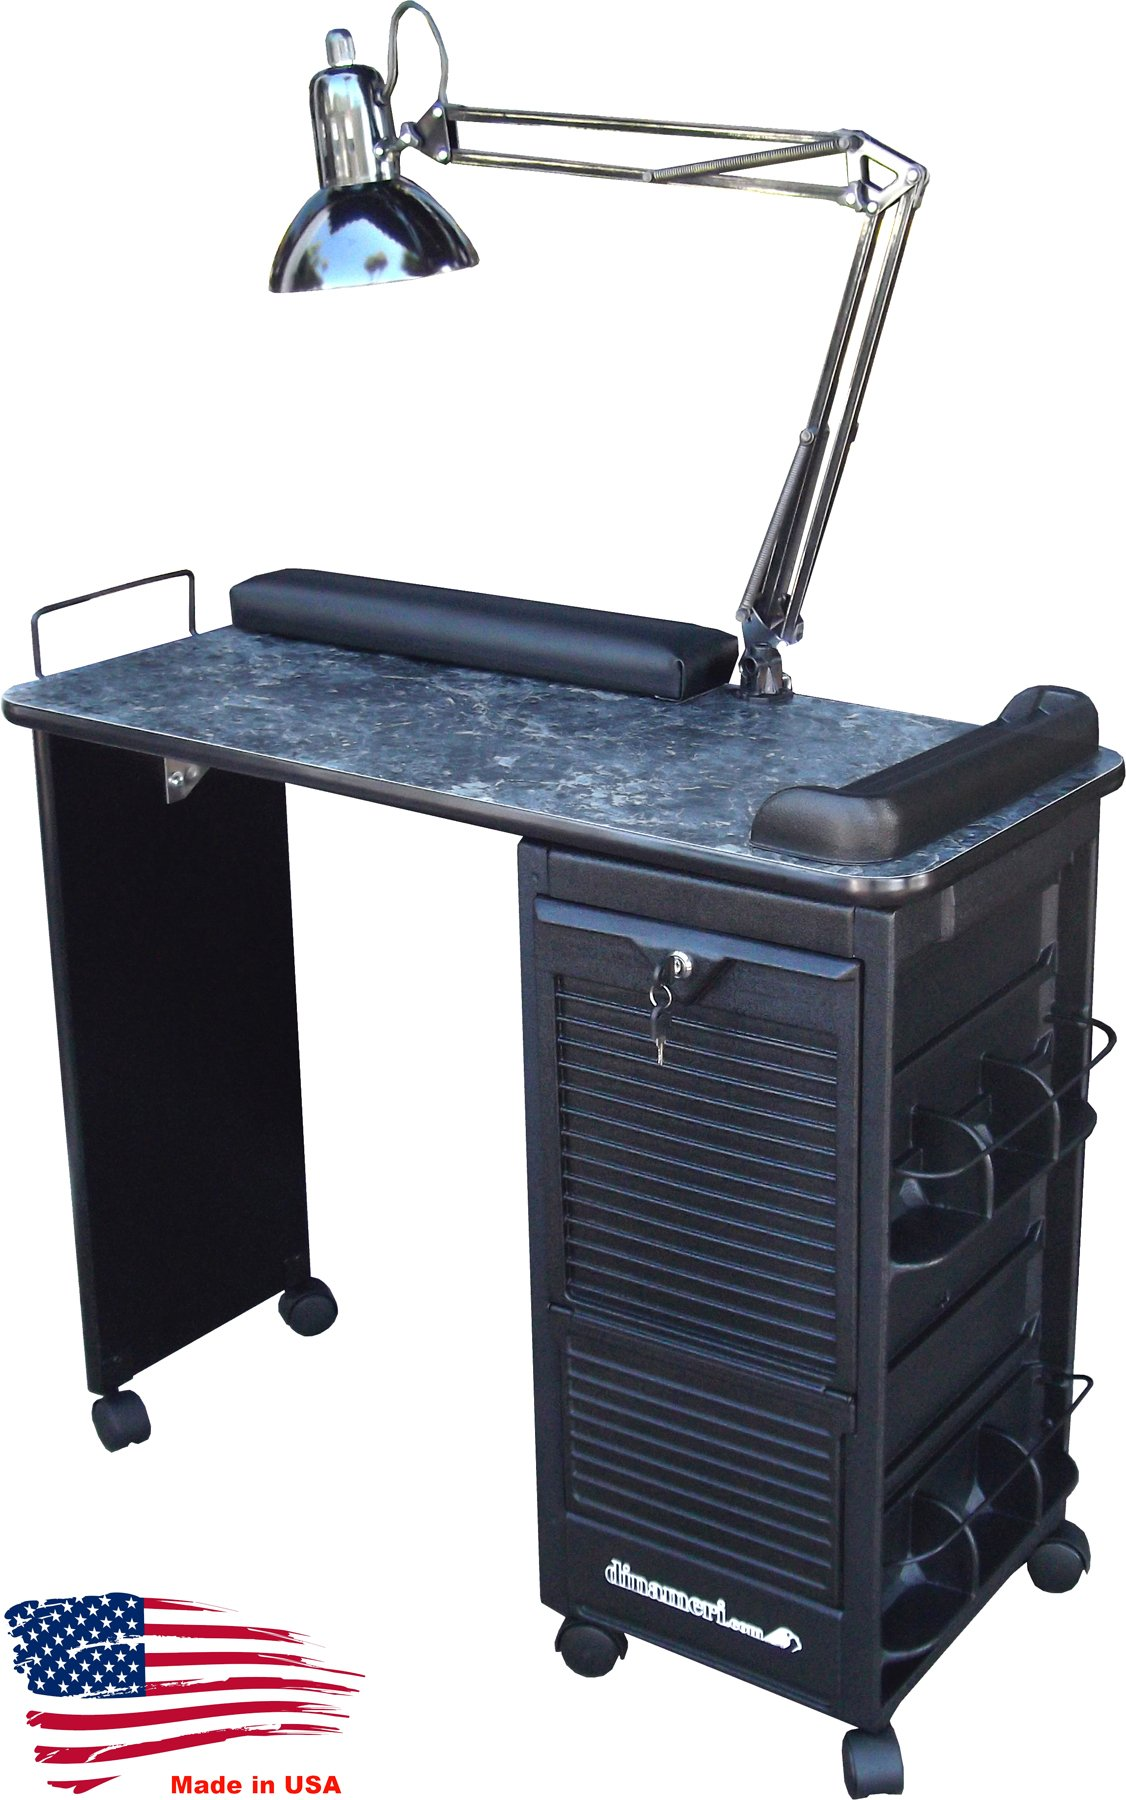 B604-DLX Manicure Nail Table Lockable Black Marble Lam. Top by Dina Meri